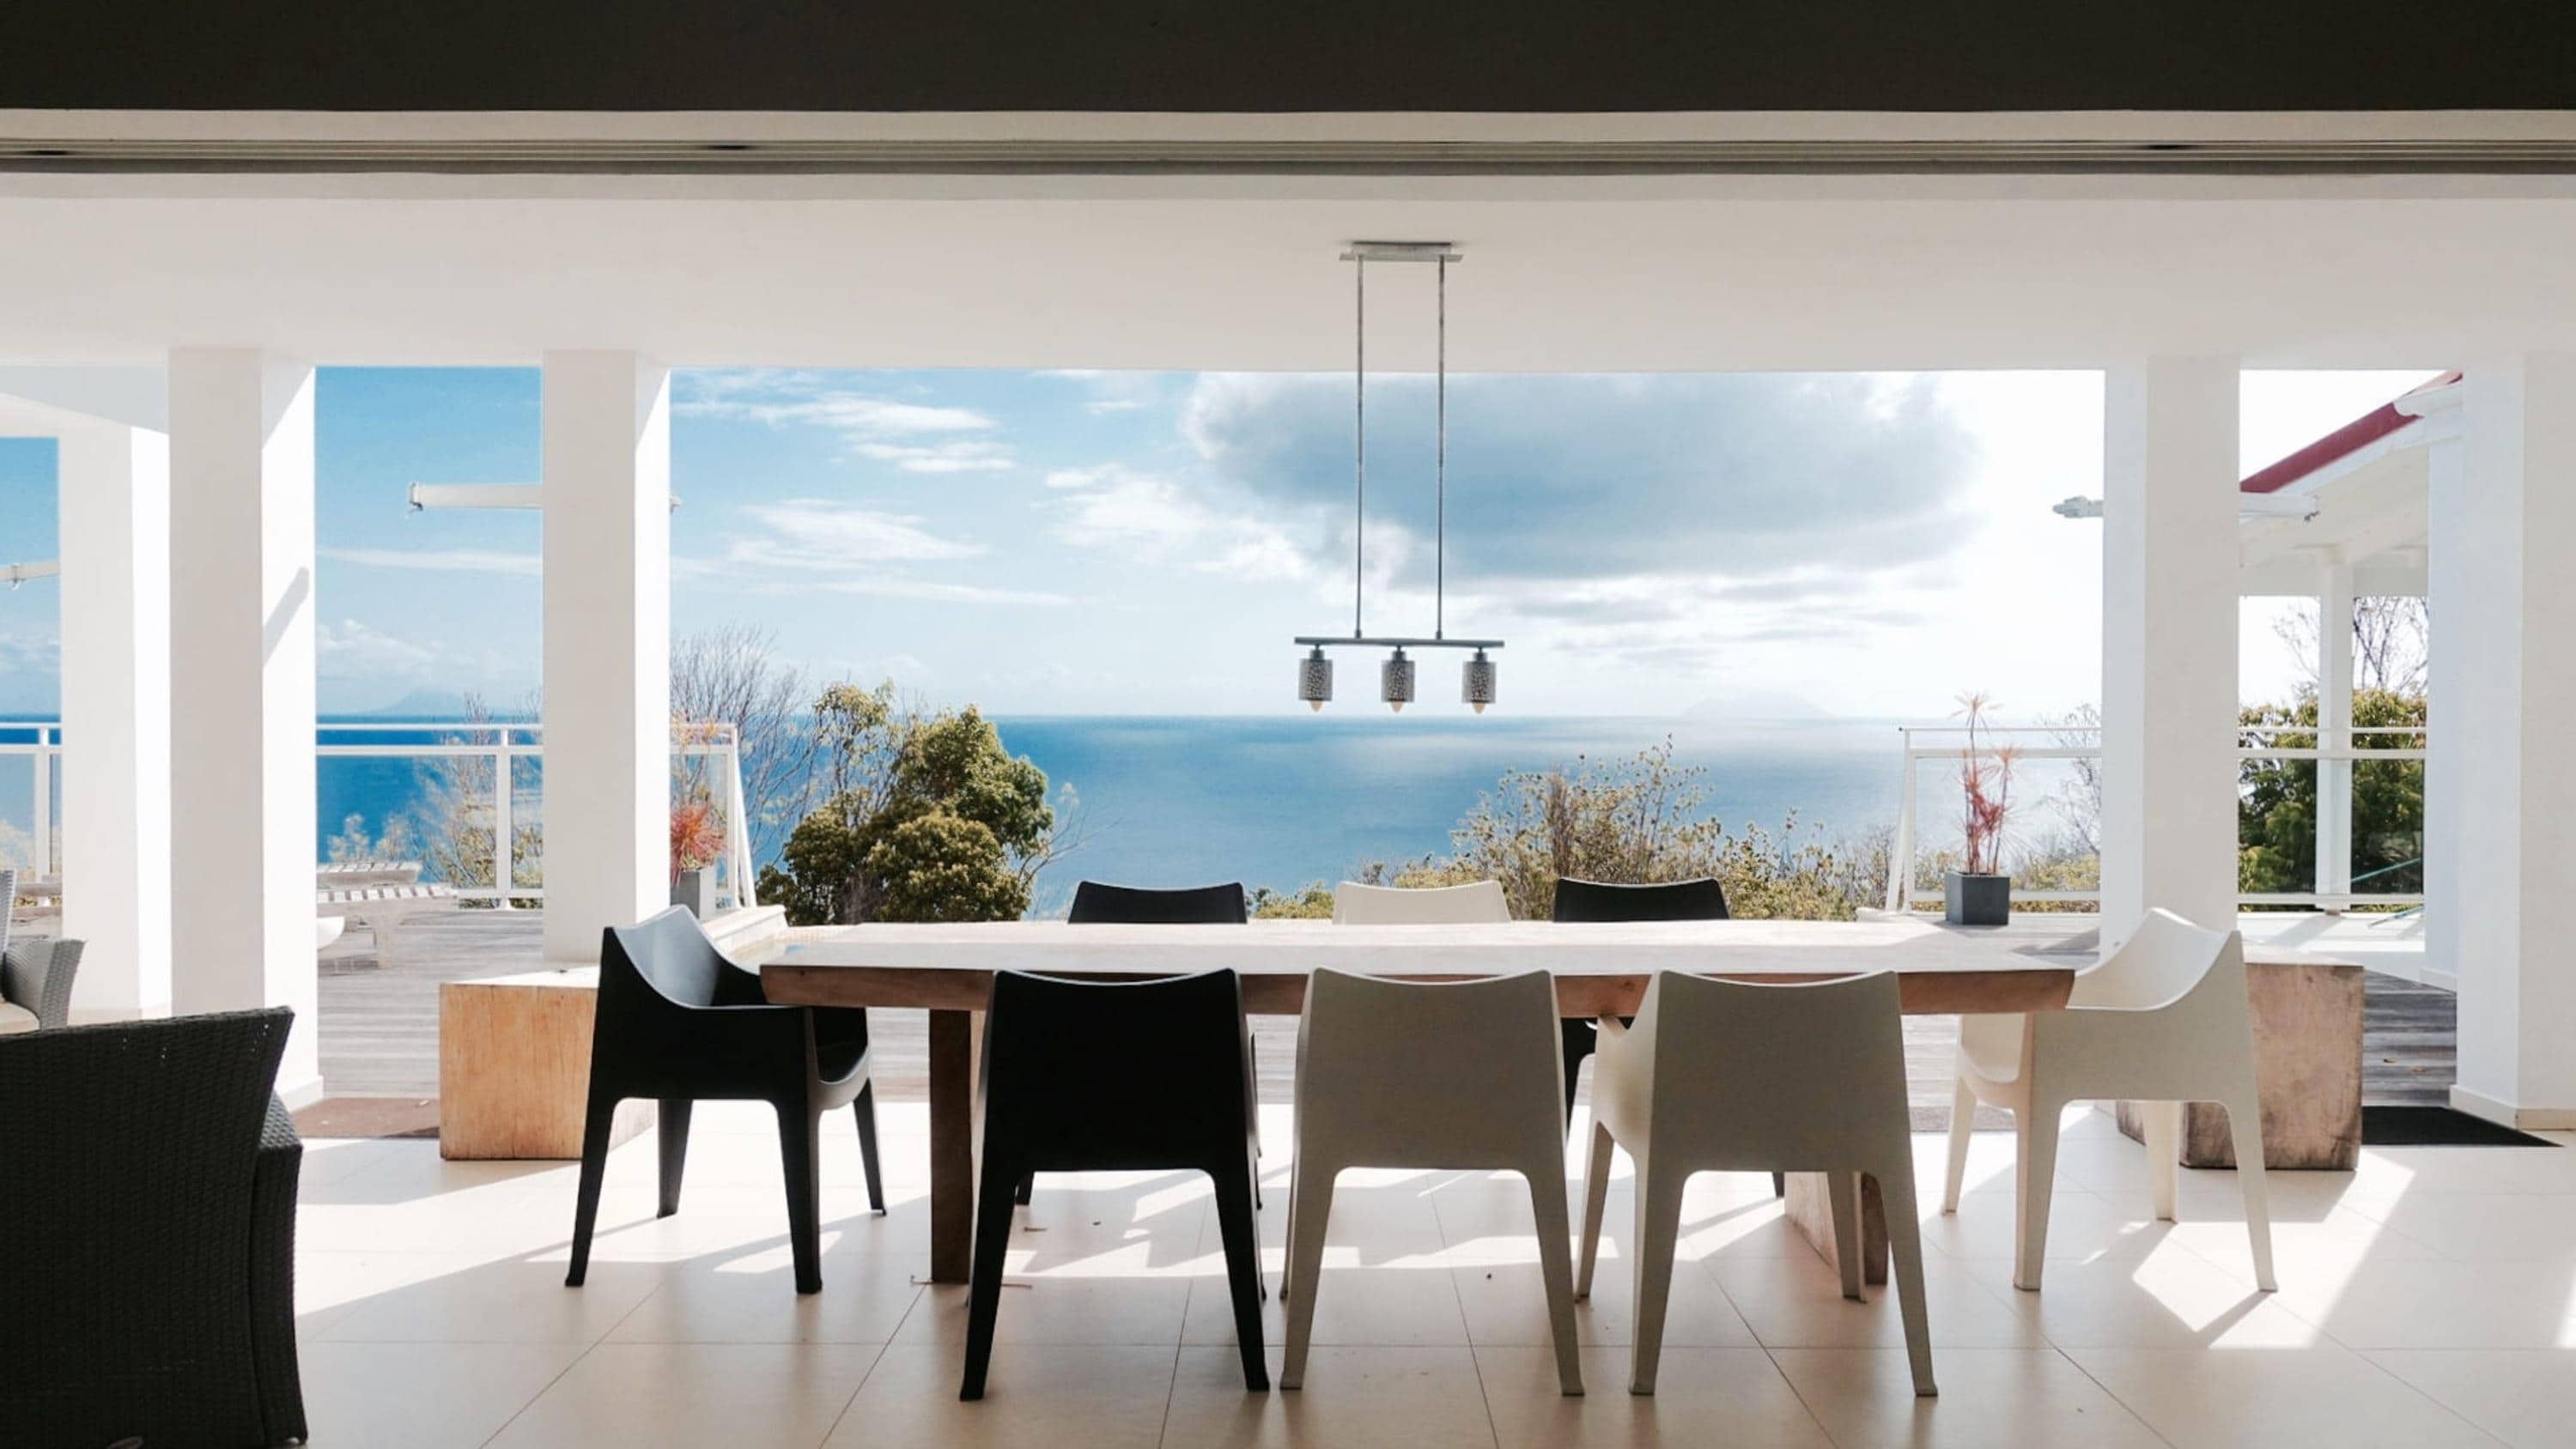 Property Image 1 - Lurin Heights Villa with Breathtaking Ocean Views